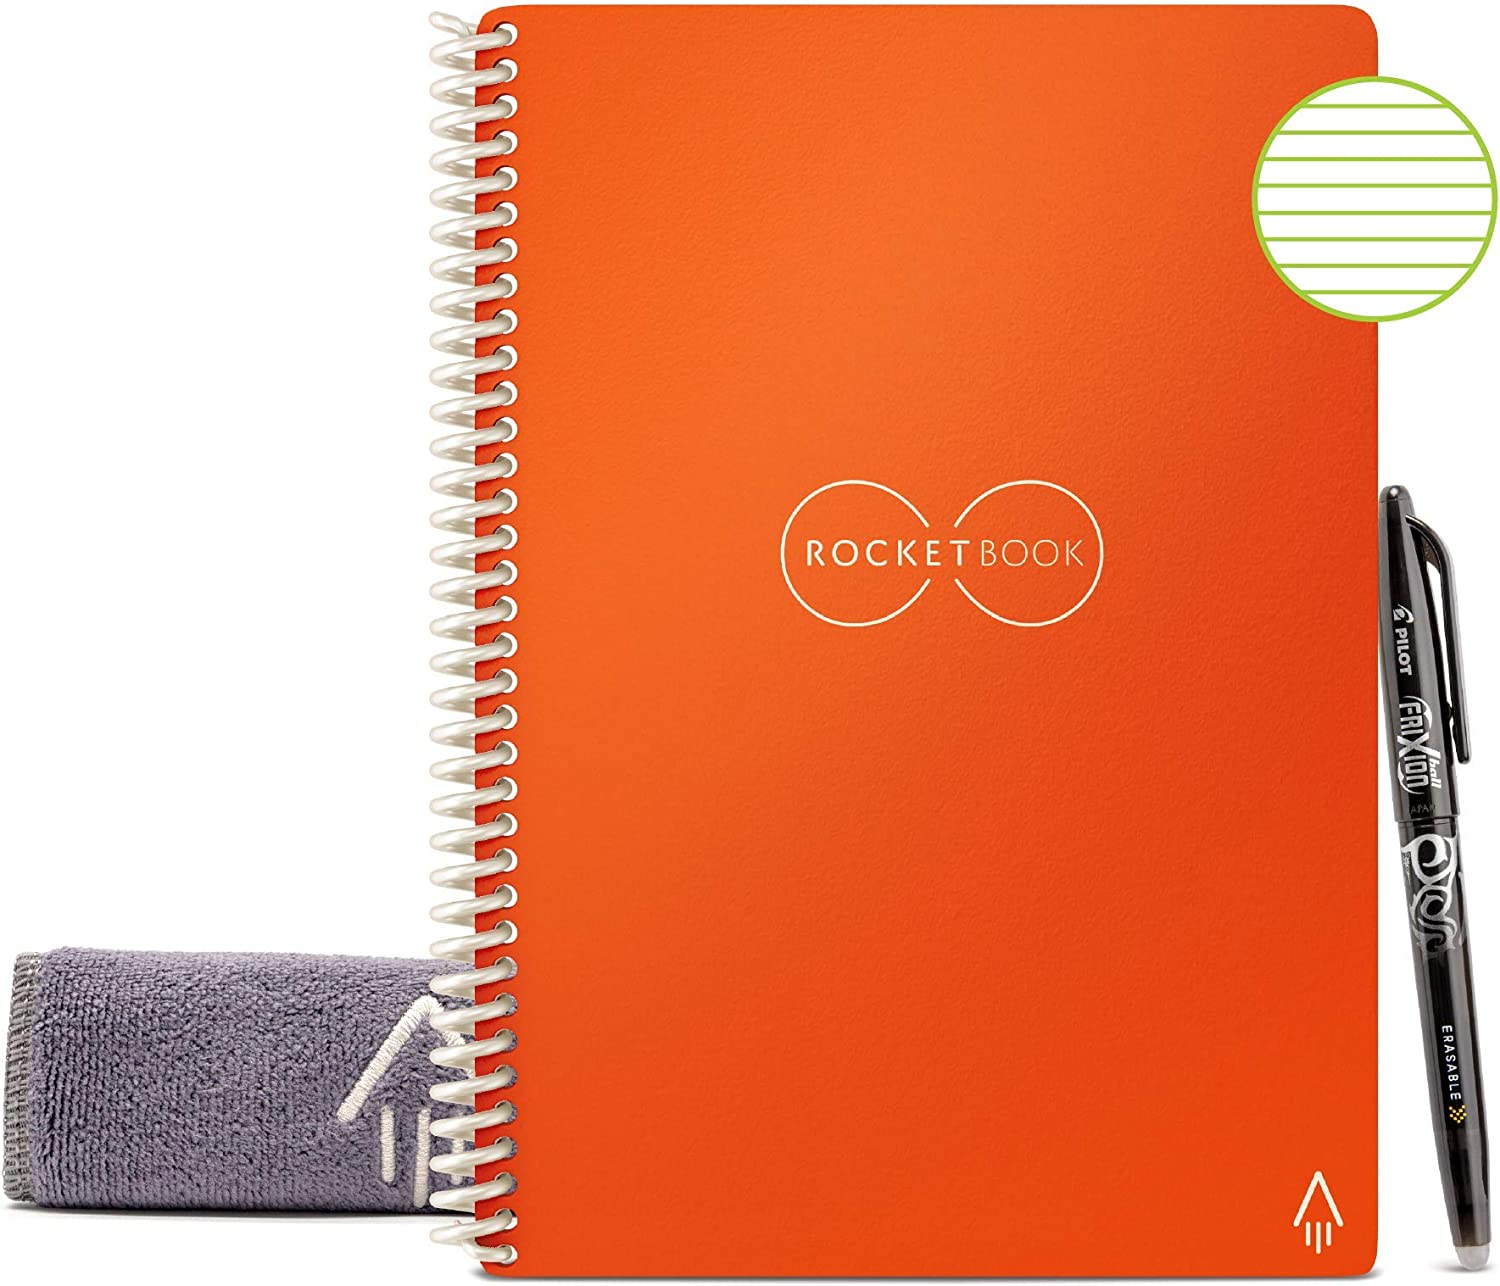 "Rocketbook Smart Reusable Notebook - Lined Eco-Friendly Notebook with 1 Pilot Frixion Pen & 1 Microfiber Cloth Included - Beacon Orange Cover, Executive Size (6"" x 8.8"")"